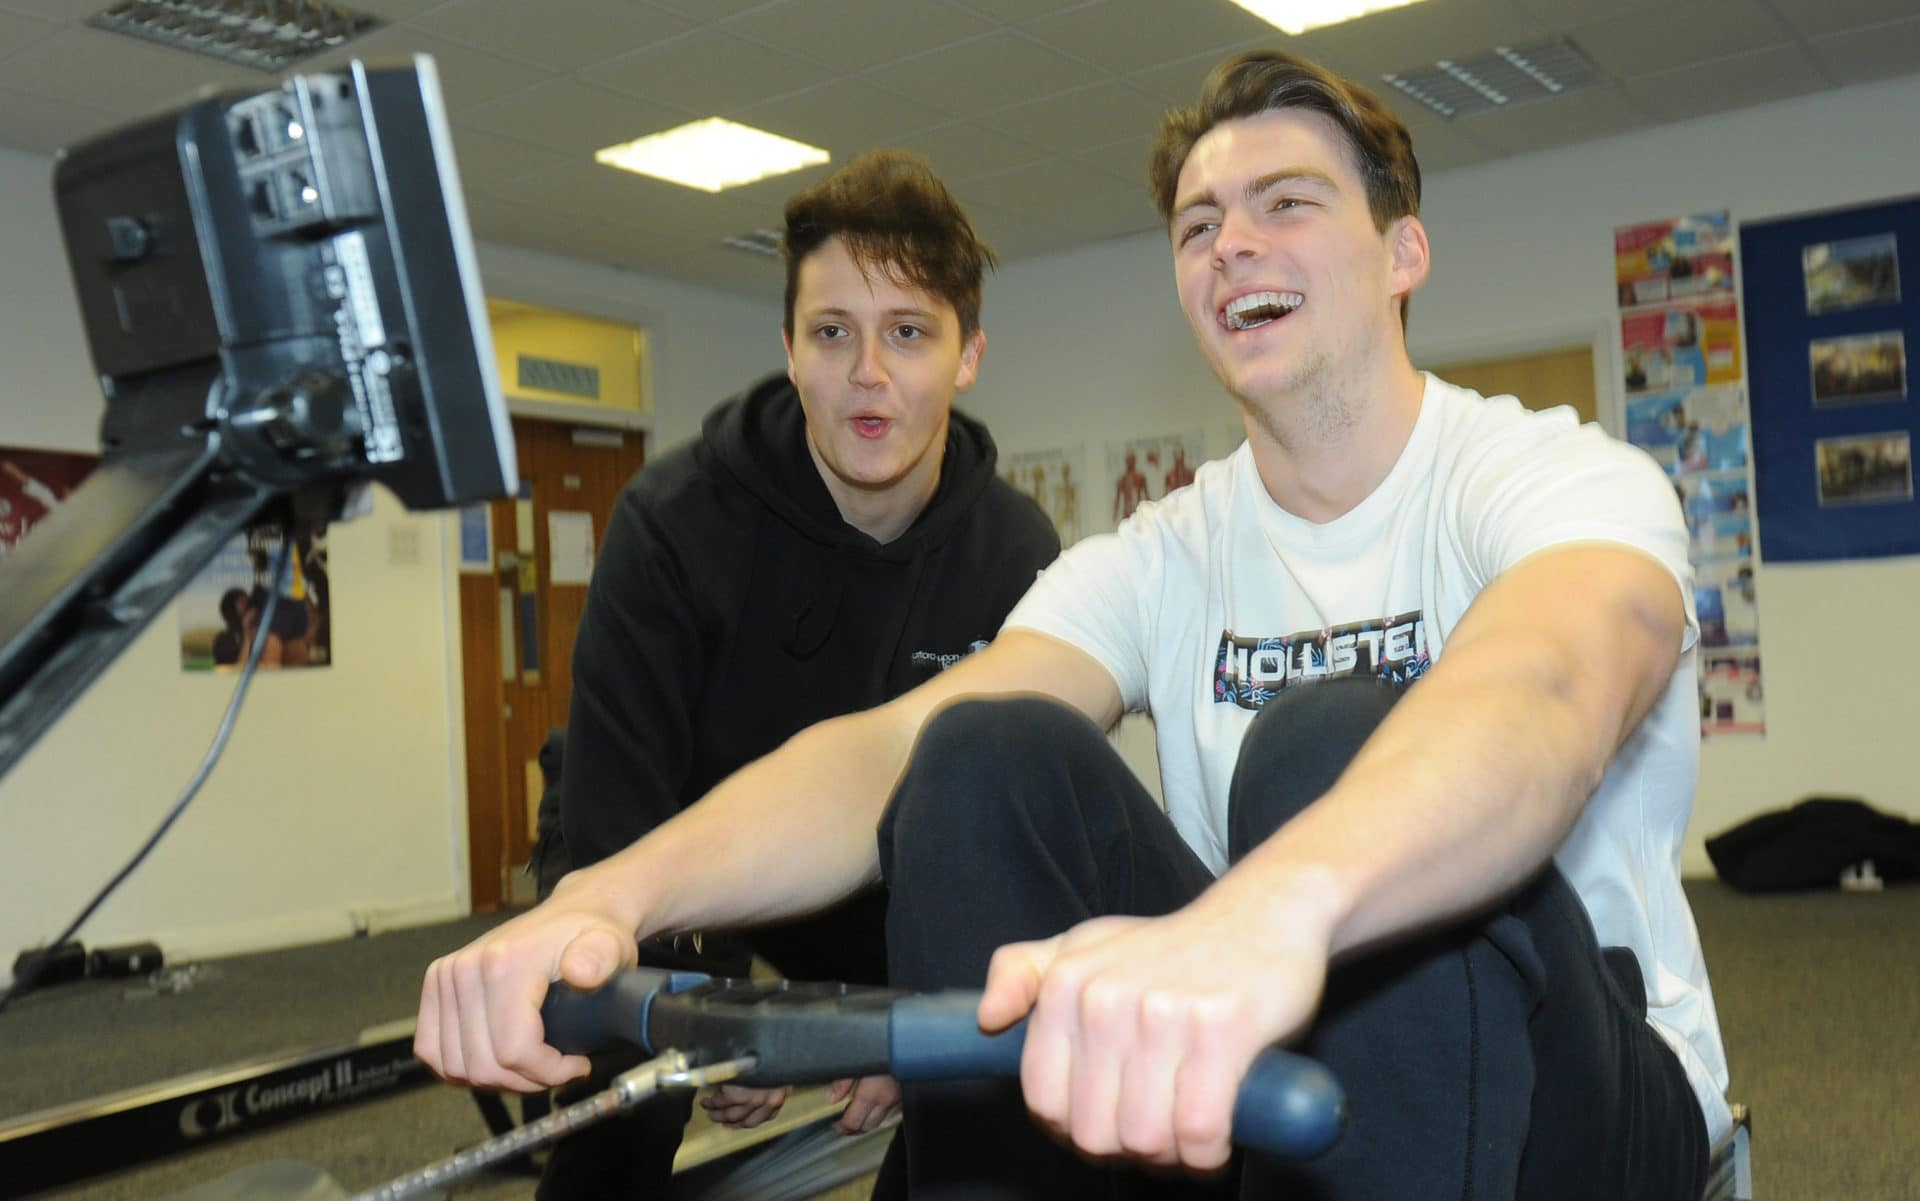 Students in the gym